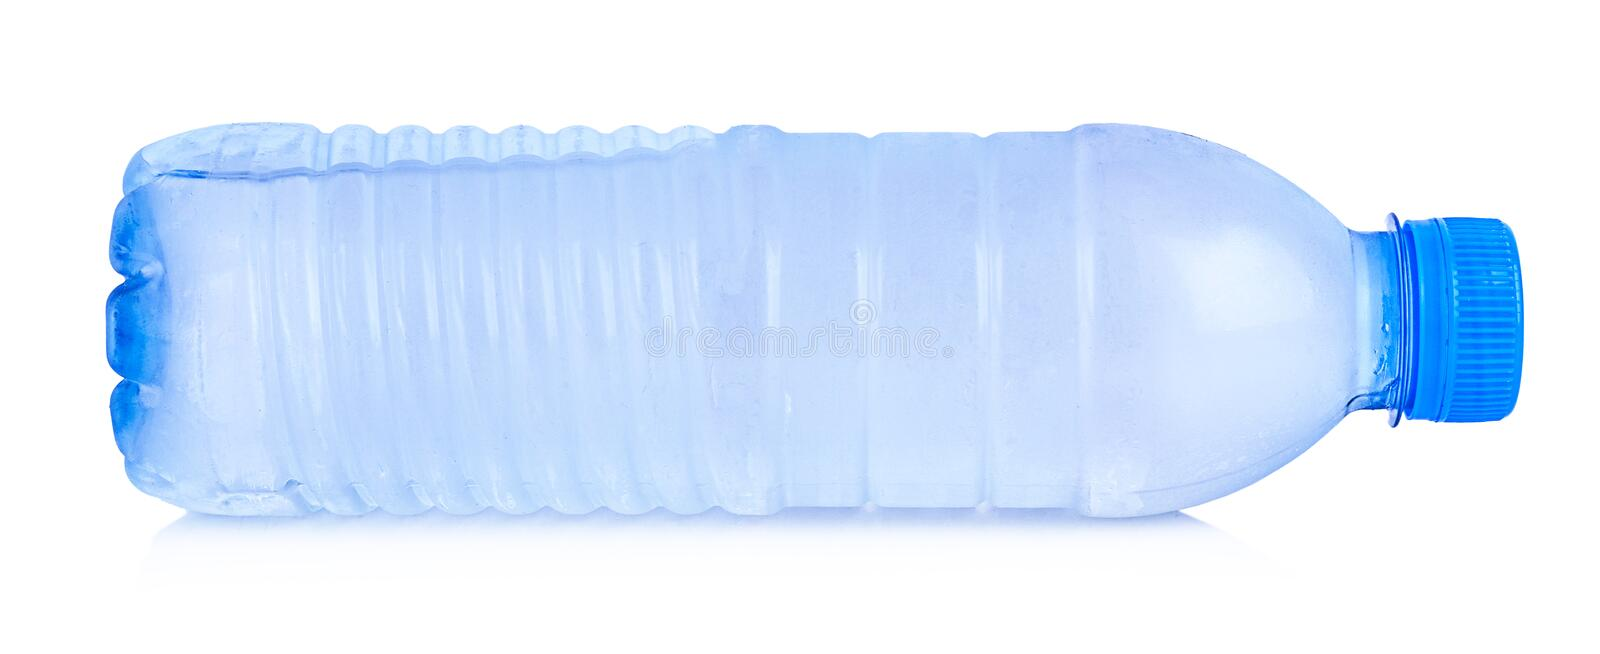 Plastic bottle of drinking water isolated on white background. Transparent blue object royalty free stock photography